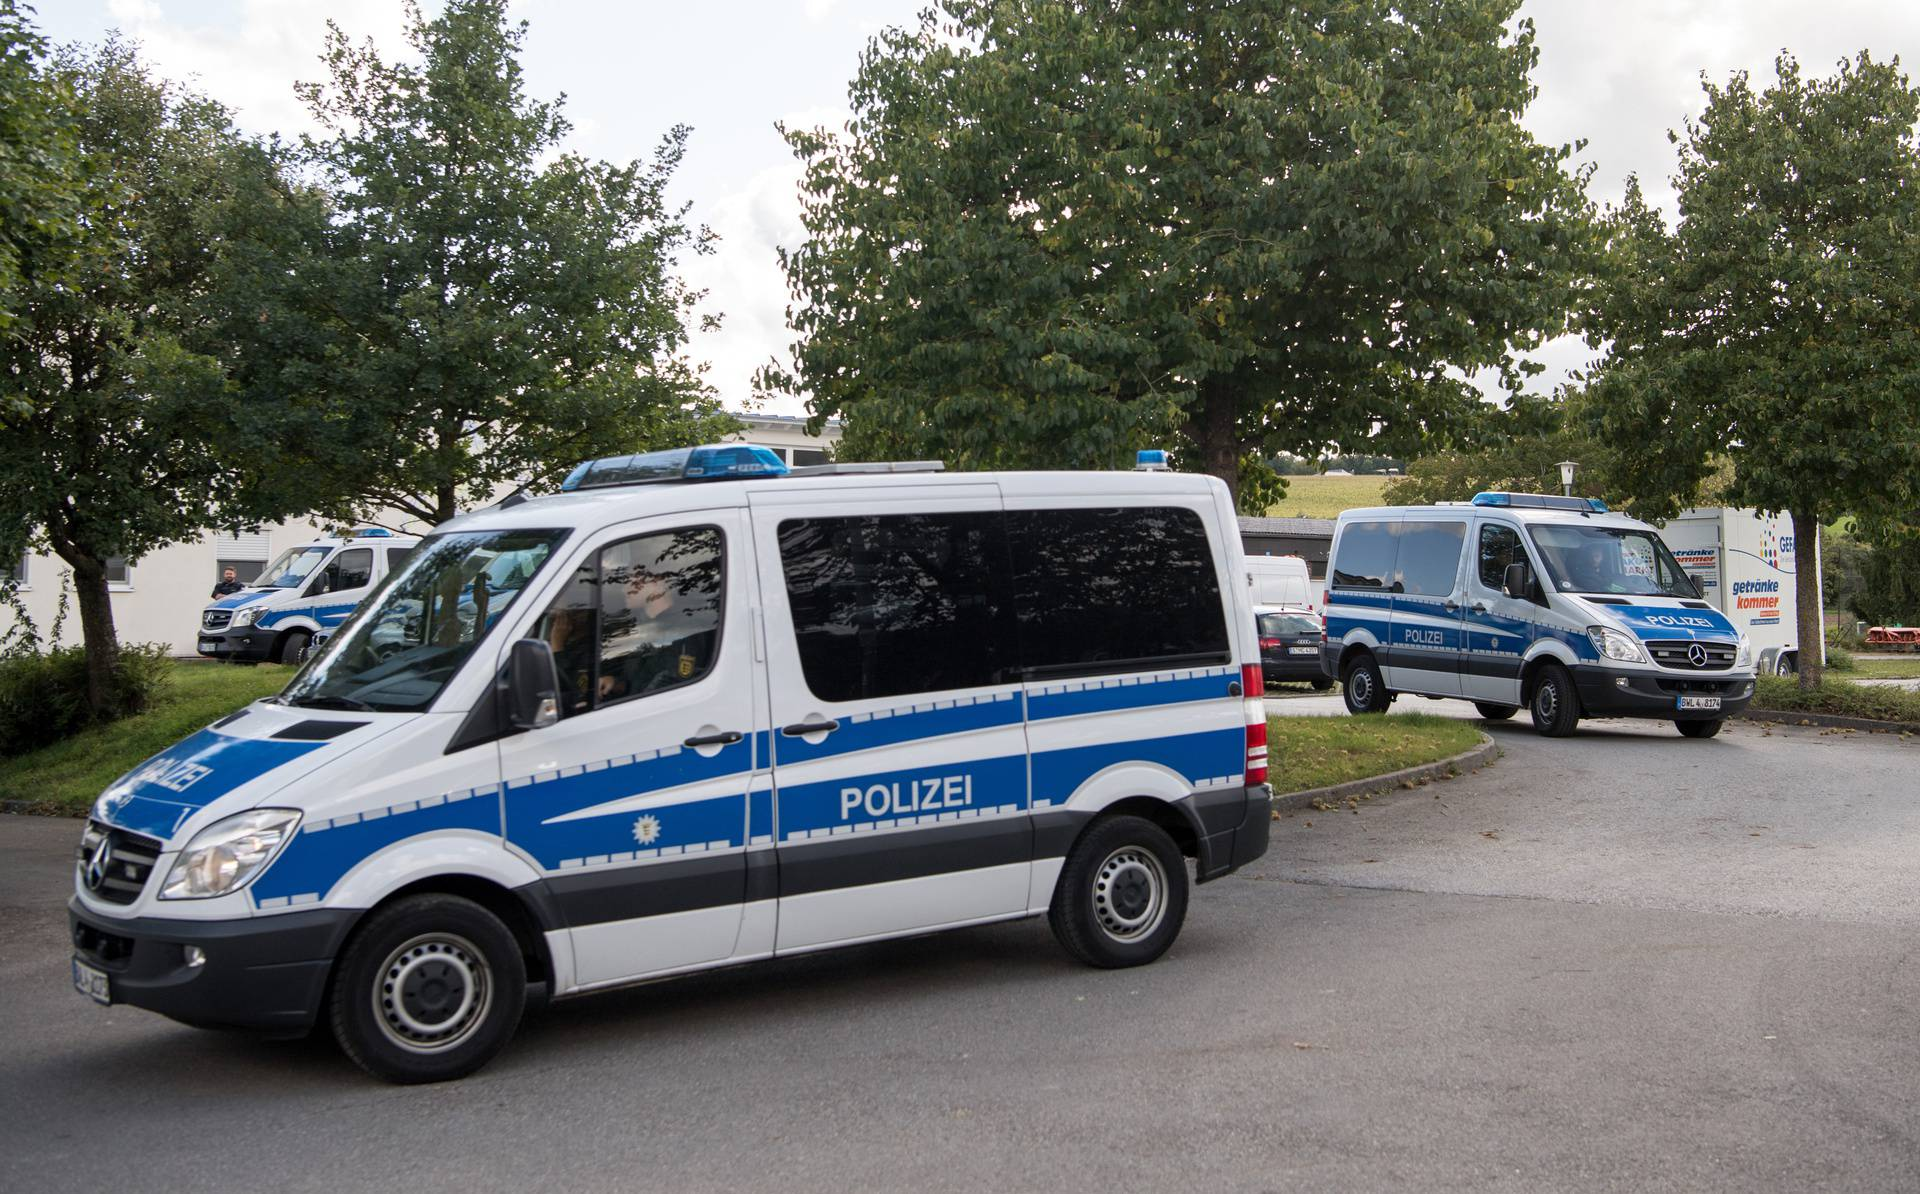 Three dead after shooting in house in Germany